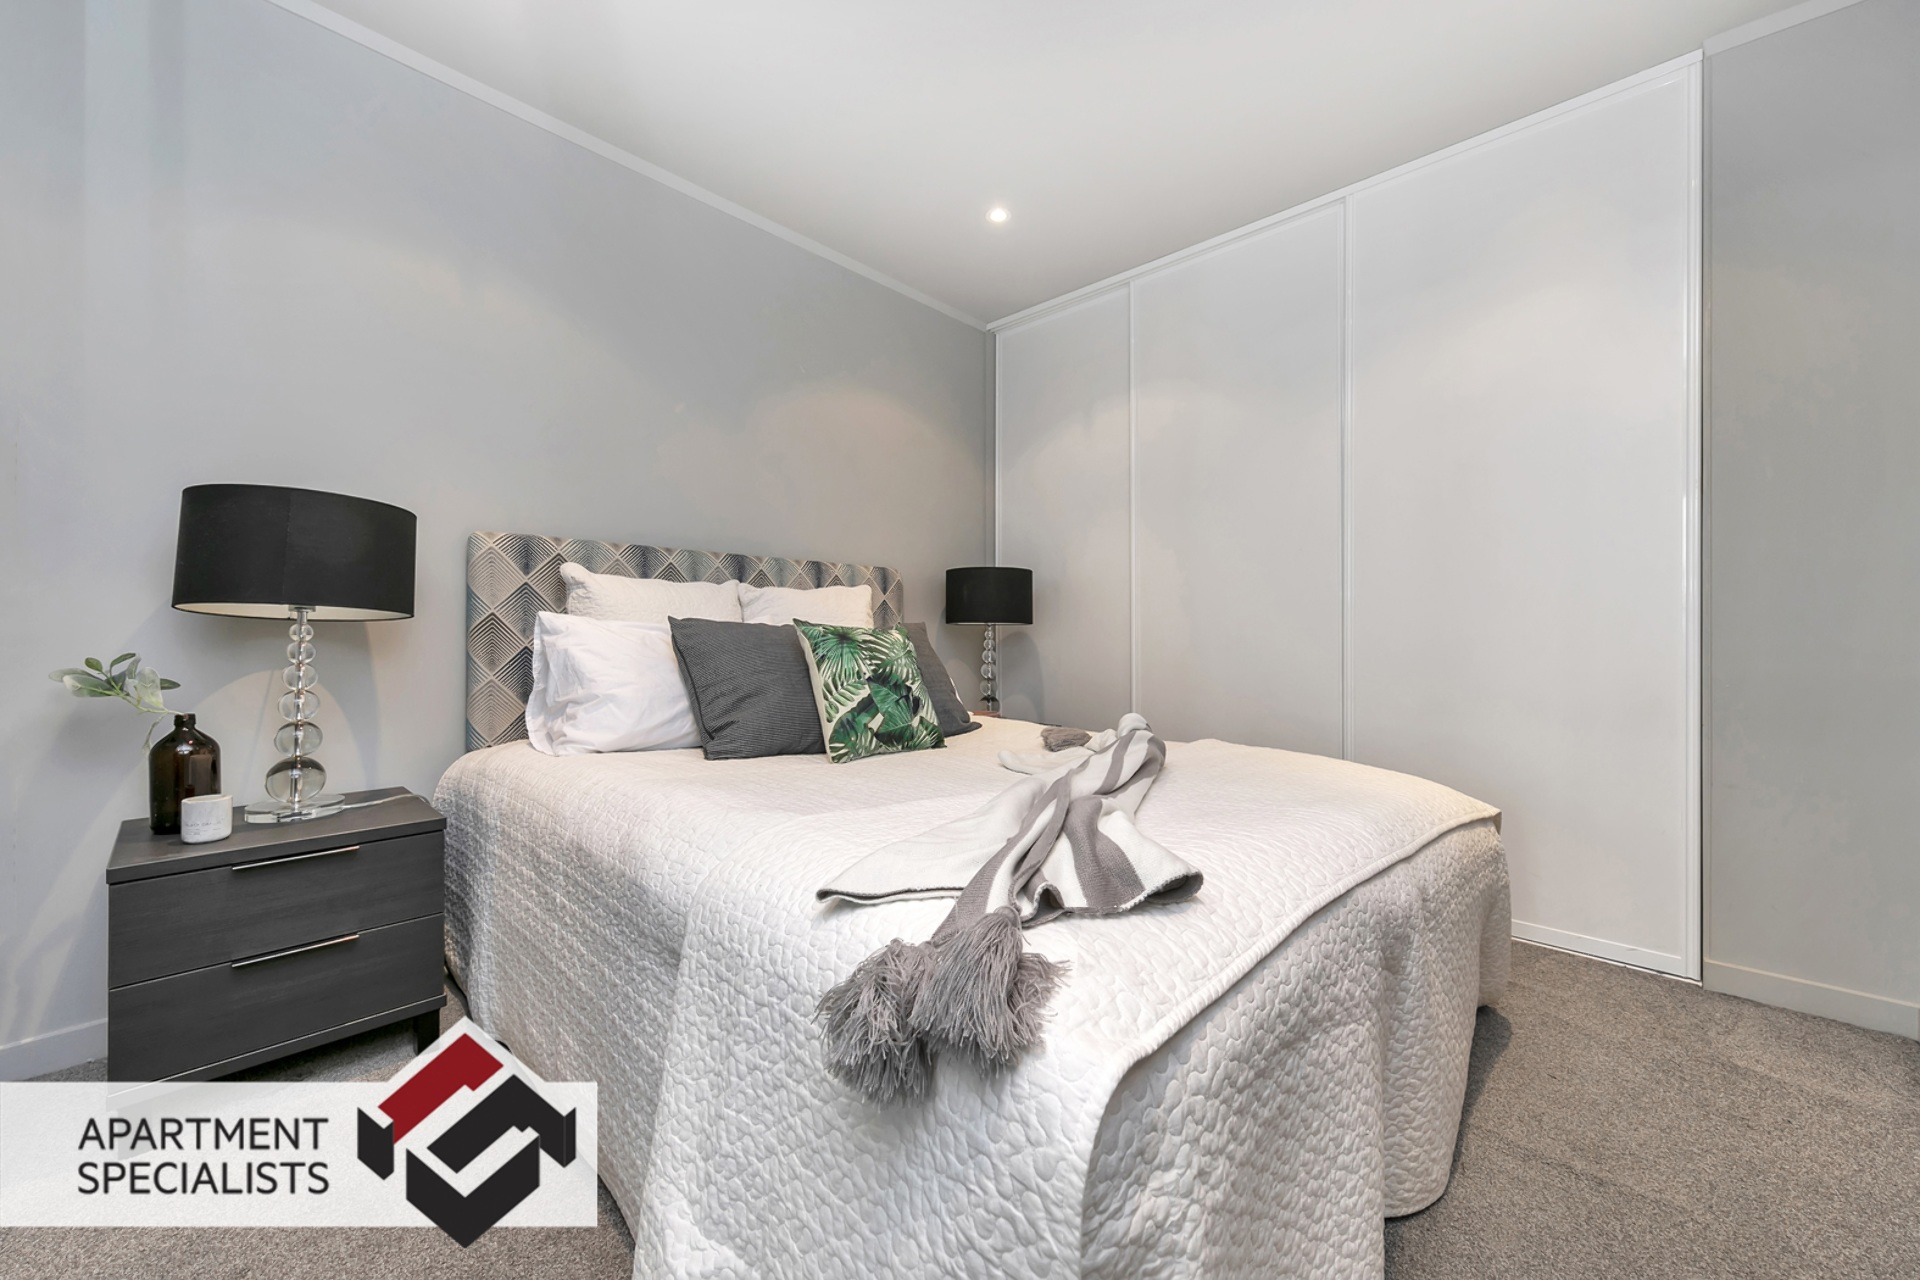 4 | 27 Union Street, City Centre | Apartment Specialists